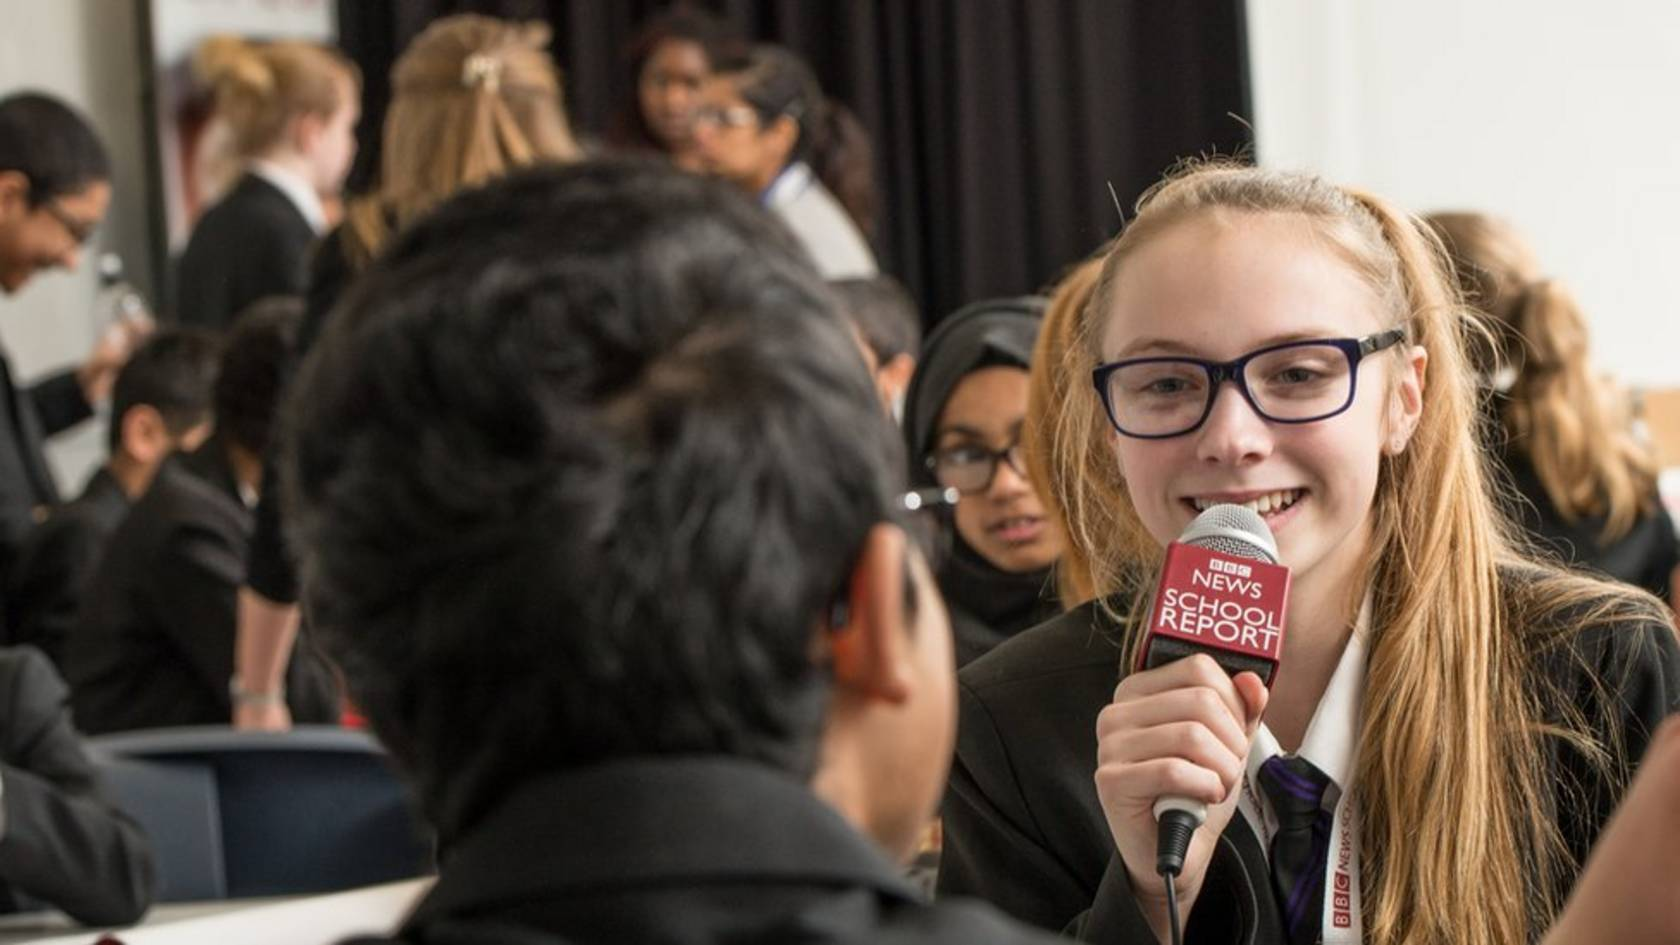 Female student with School Report microphone surrounded by other young people